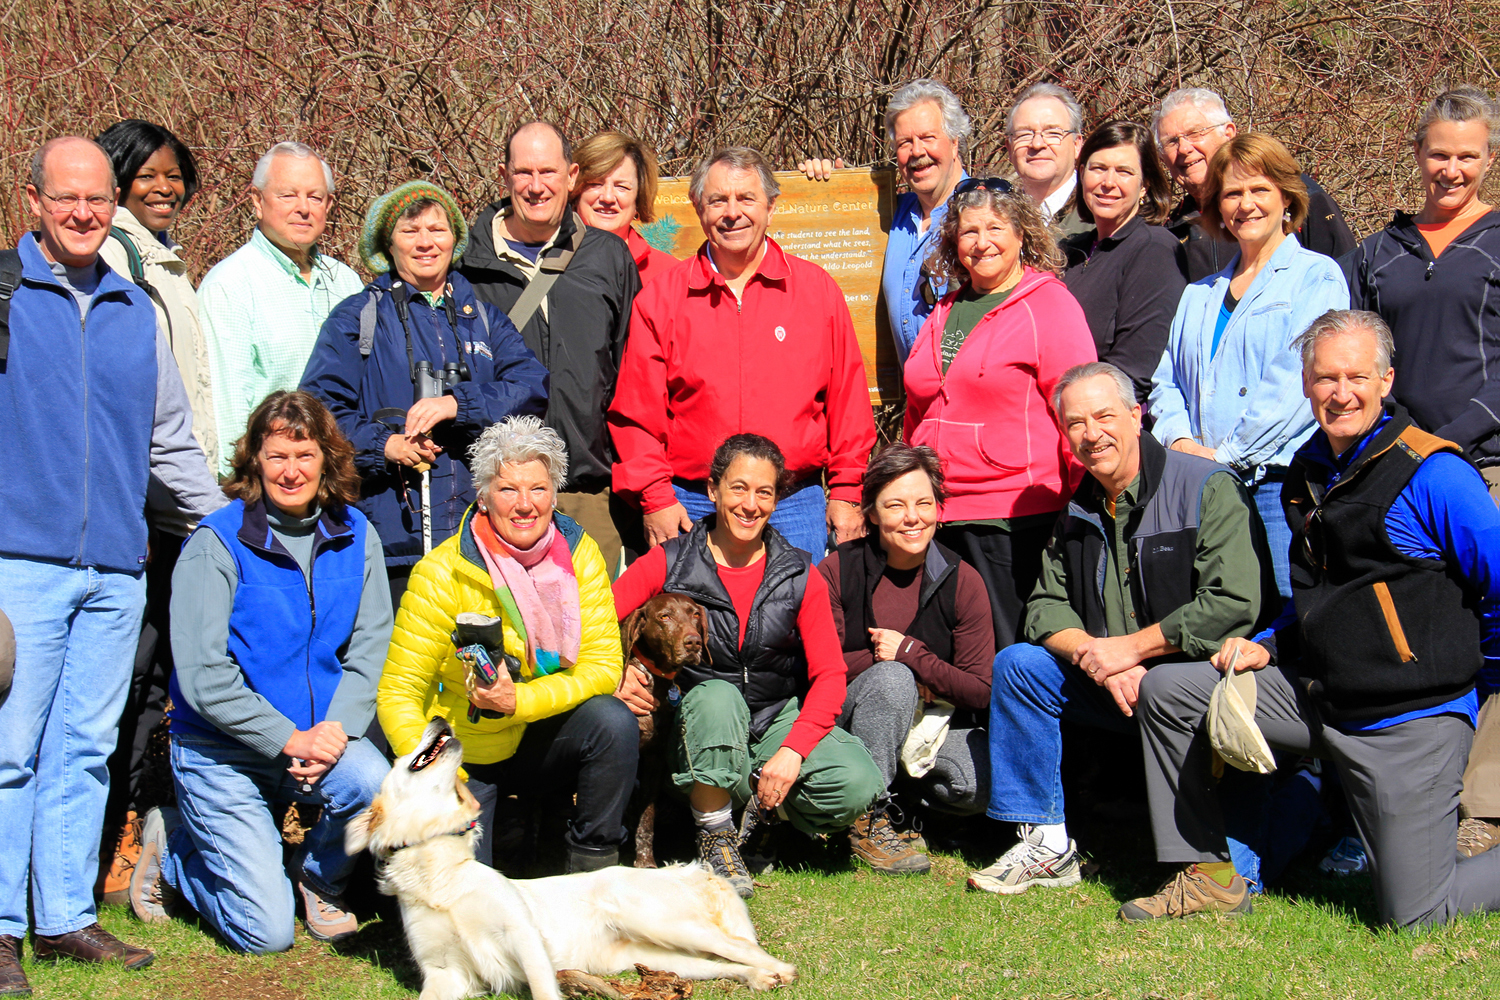 On Saturday The Hiking Fellowship Group Enjoyed Its First Hike Of Season Organized By Rotarian Karl Gutknecht With Bob Miller President And Executive